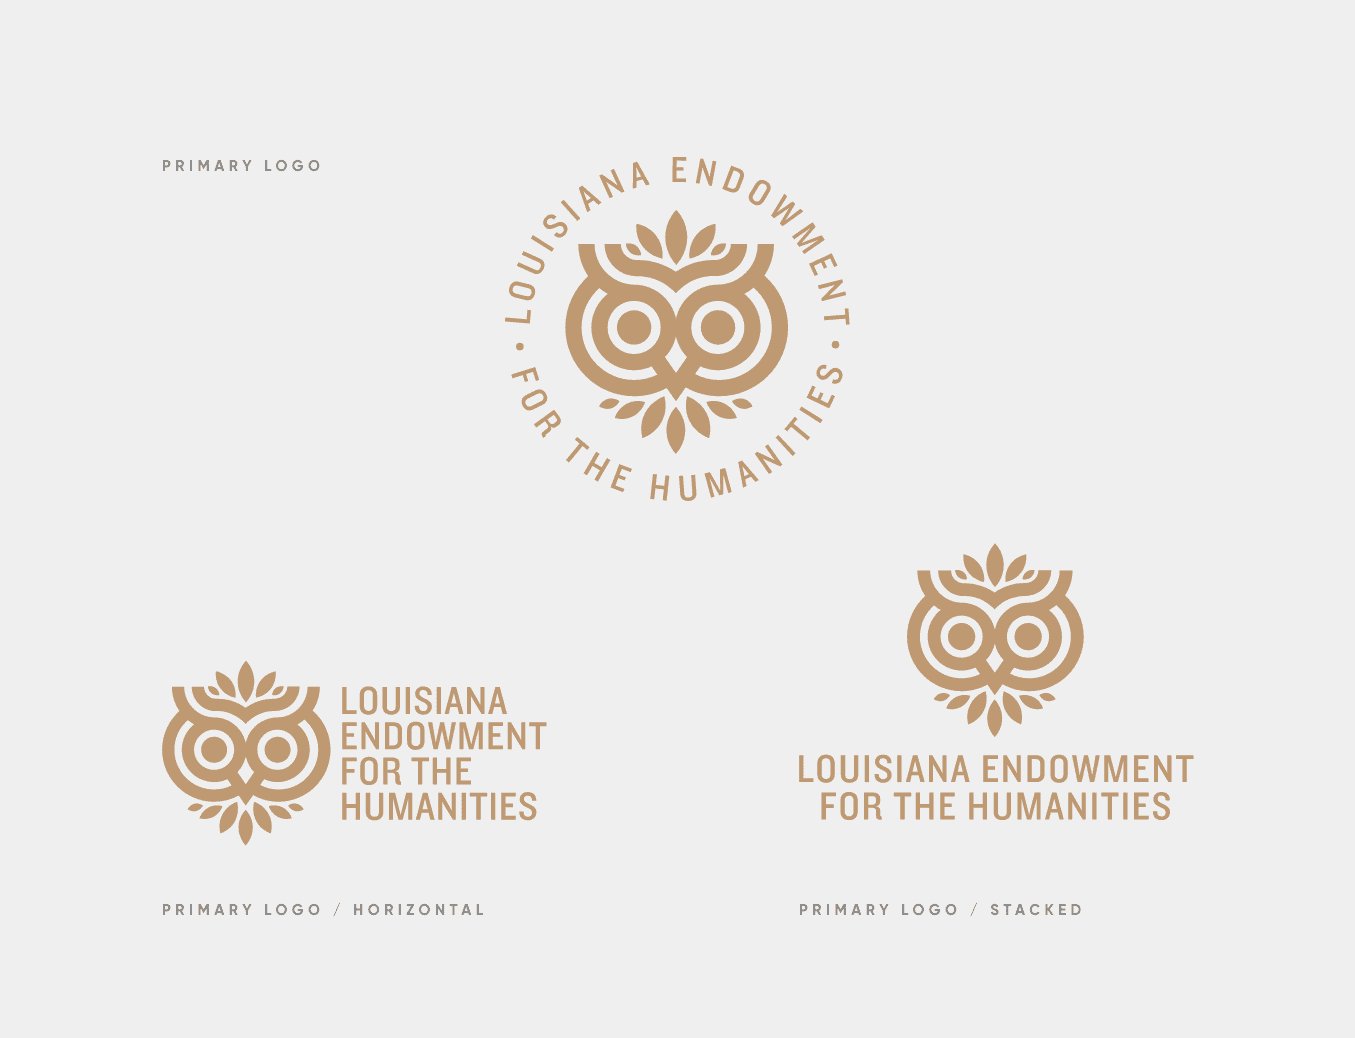 logo grouping of the gold logos for louisiana endowment of humanities